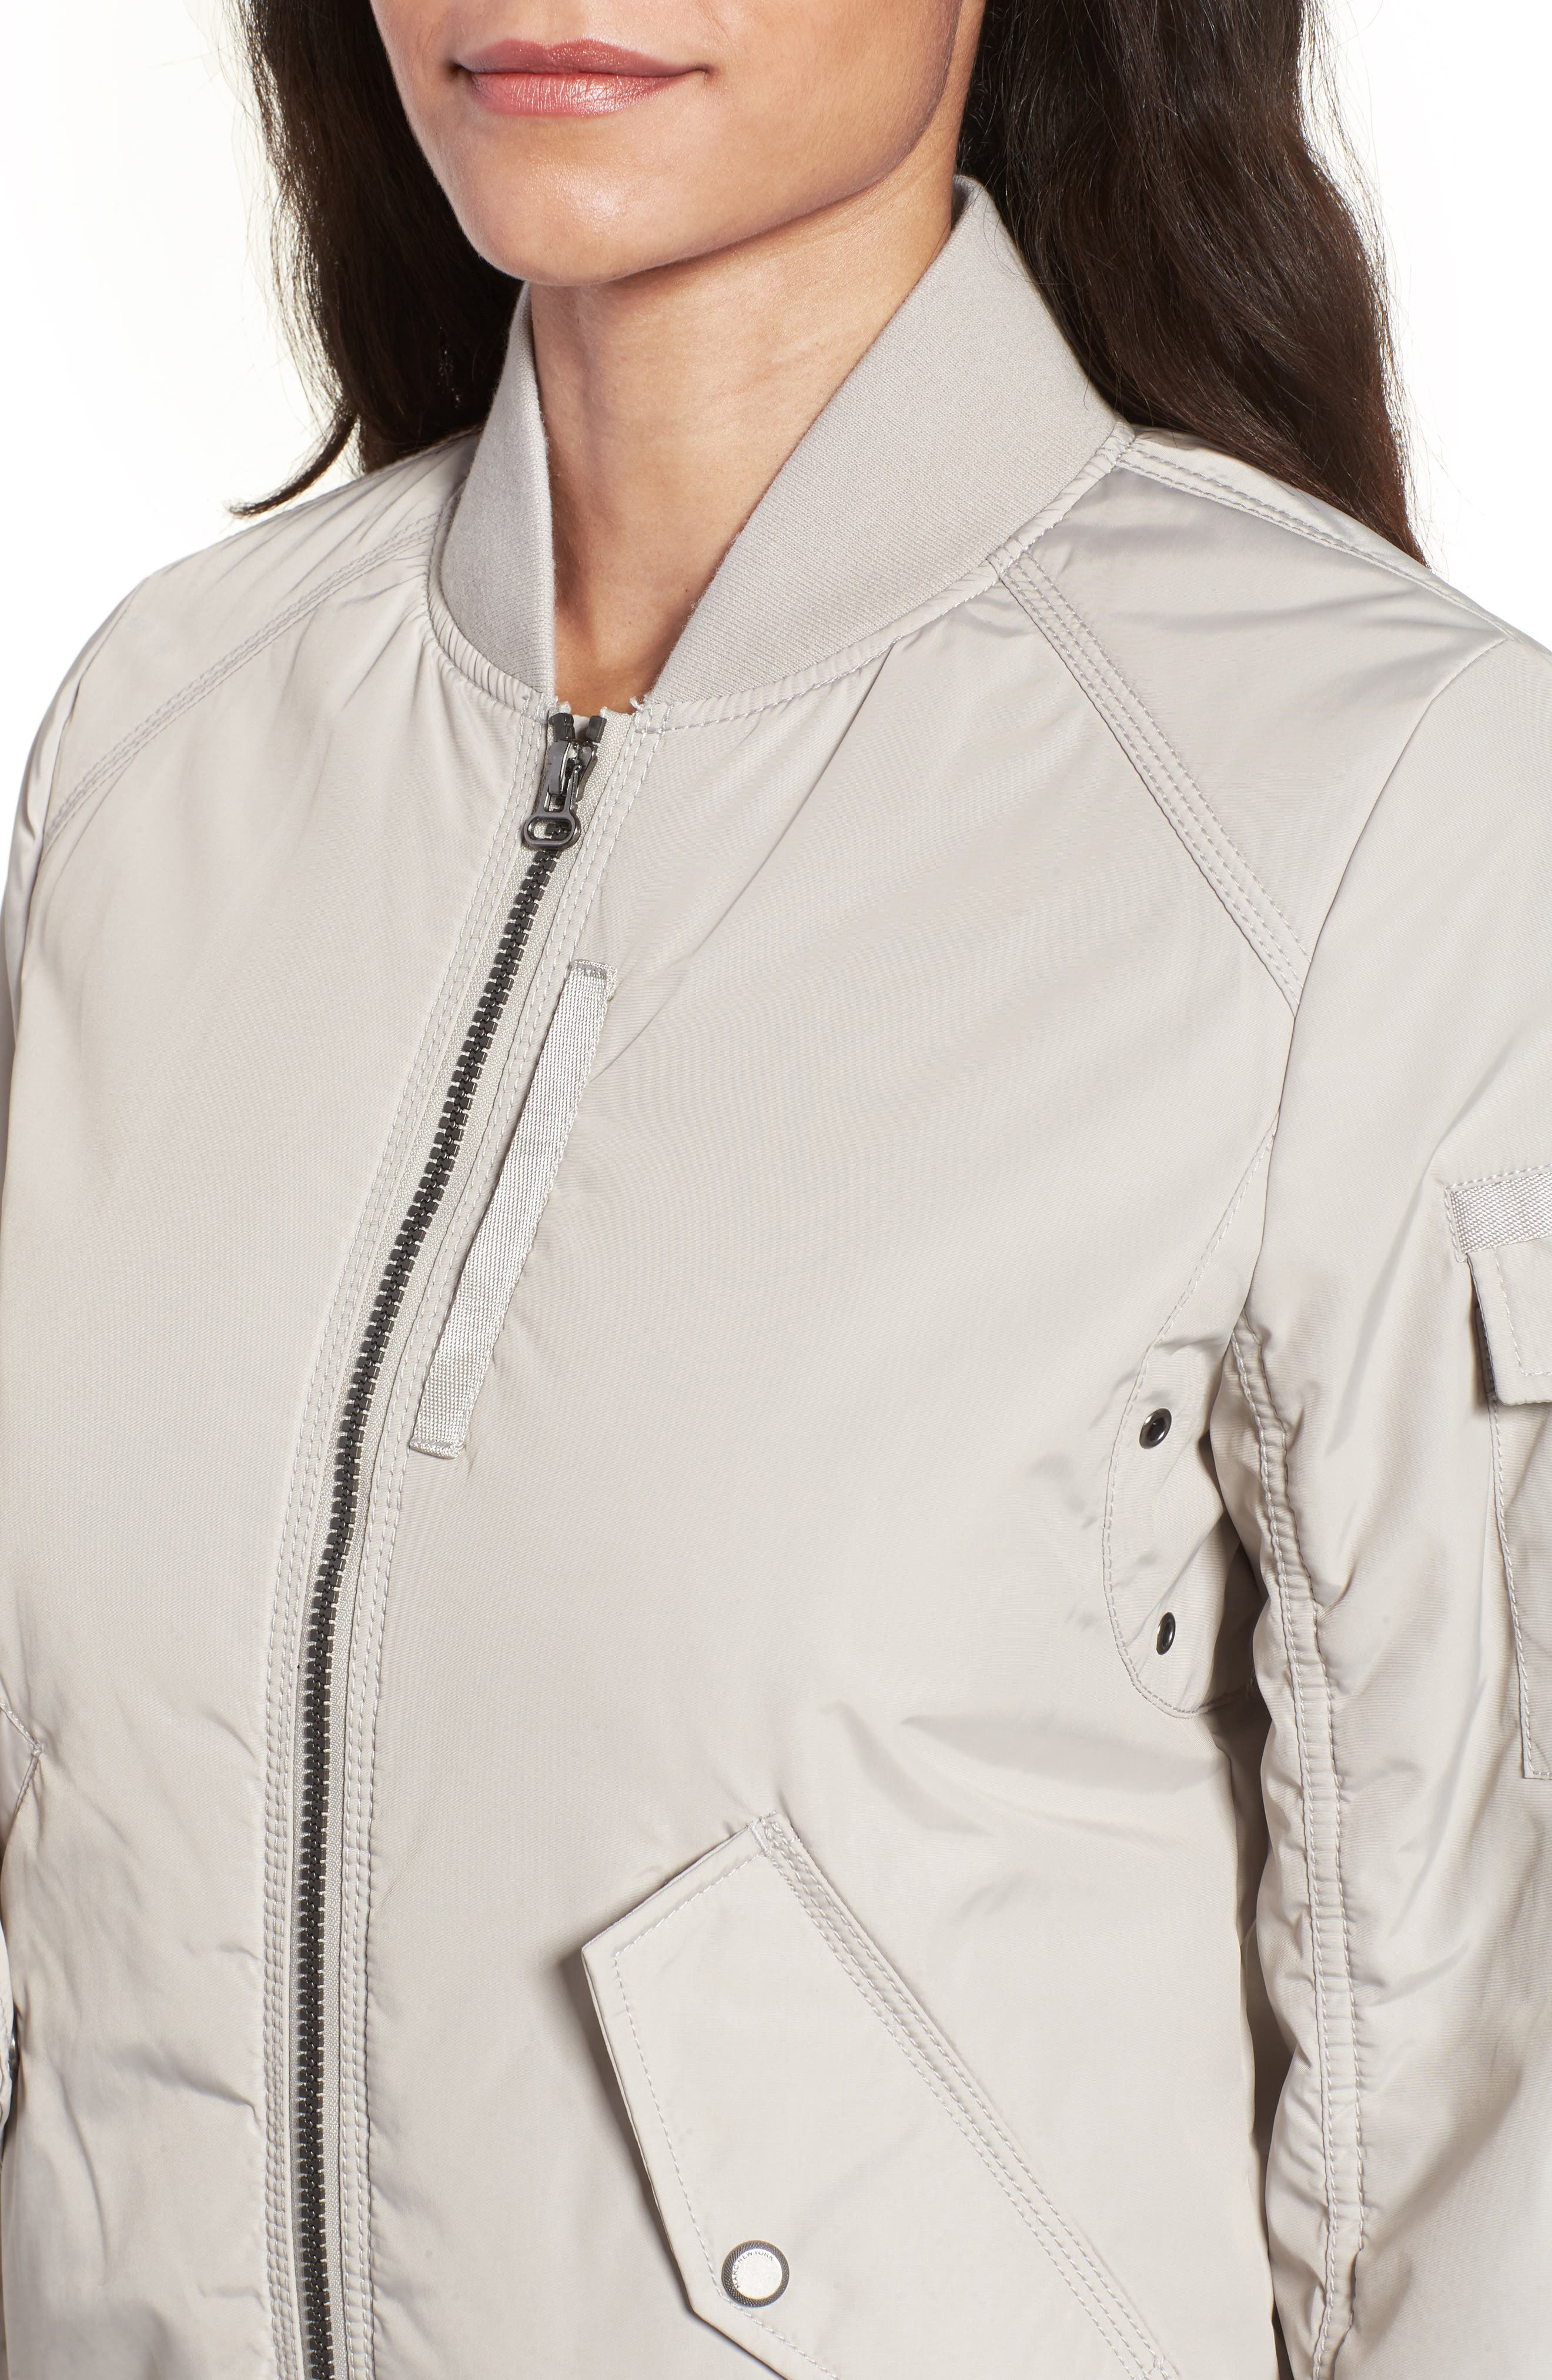 Foster Nylon Twill Bomber Jacket,                             Alternate thumbnail 15, color,